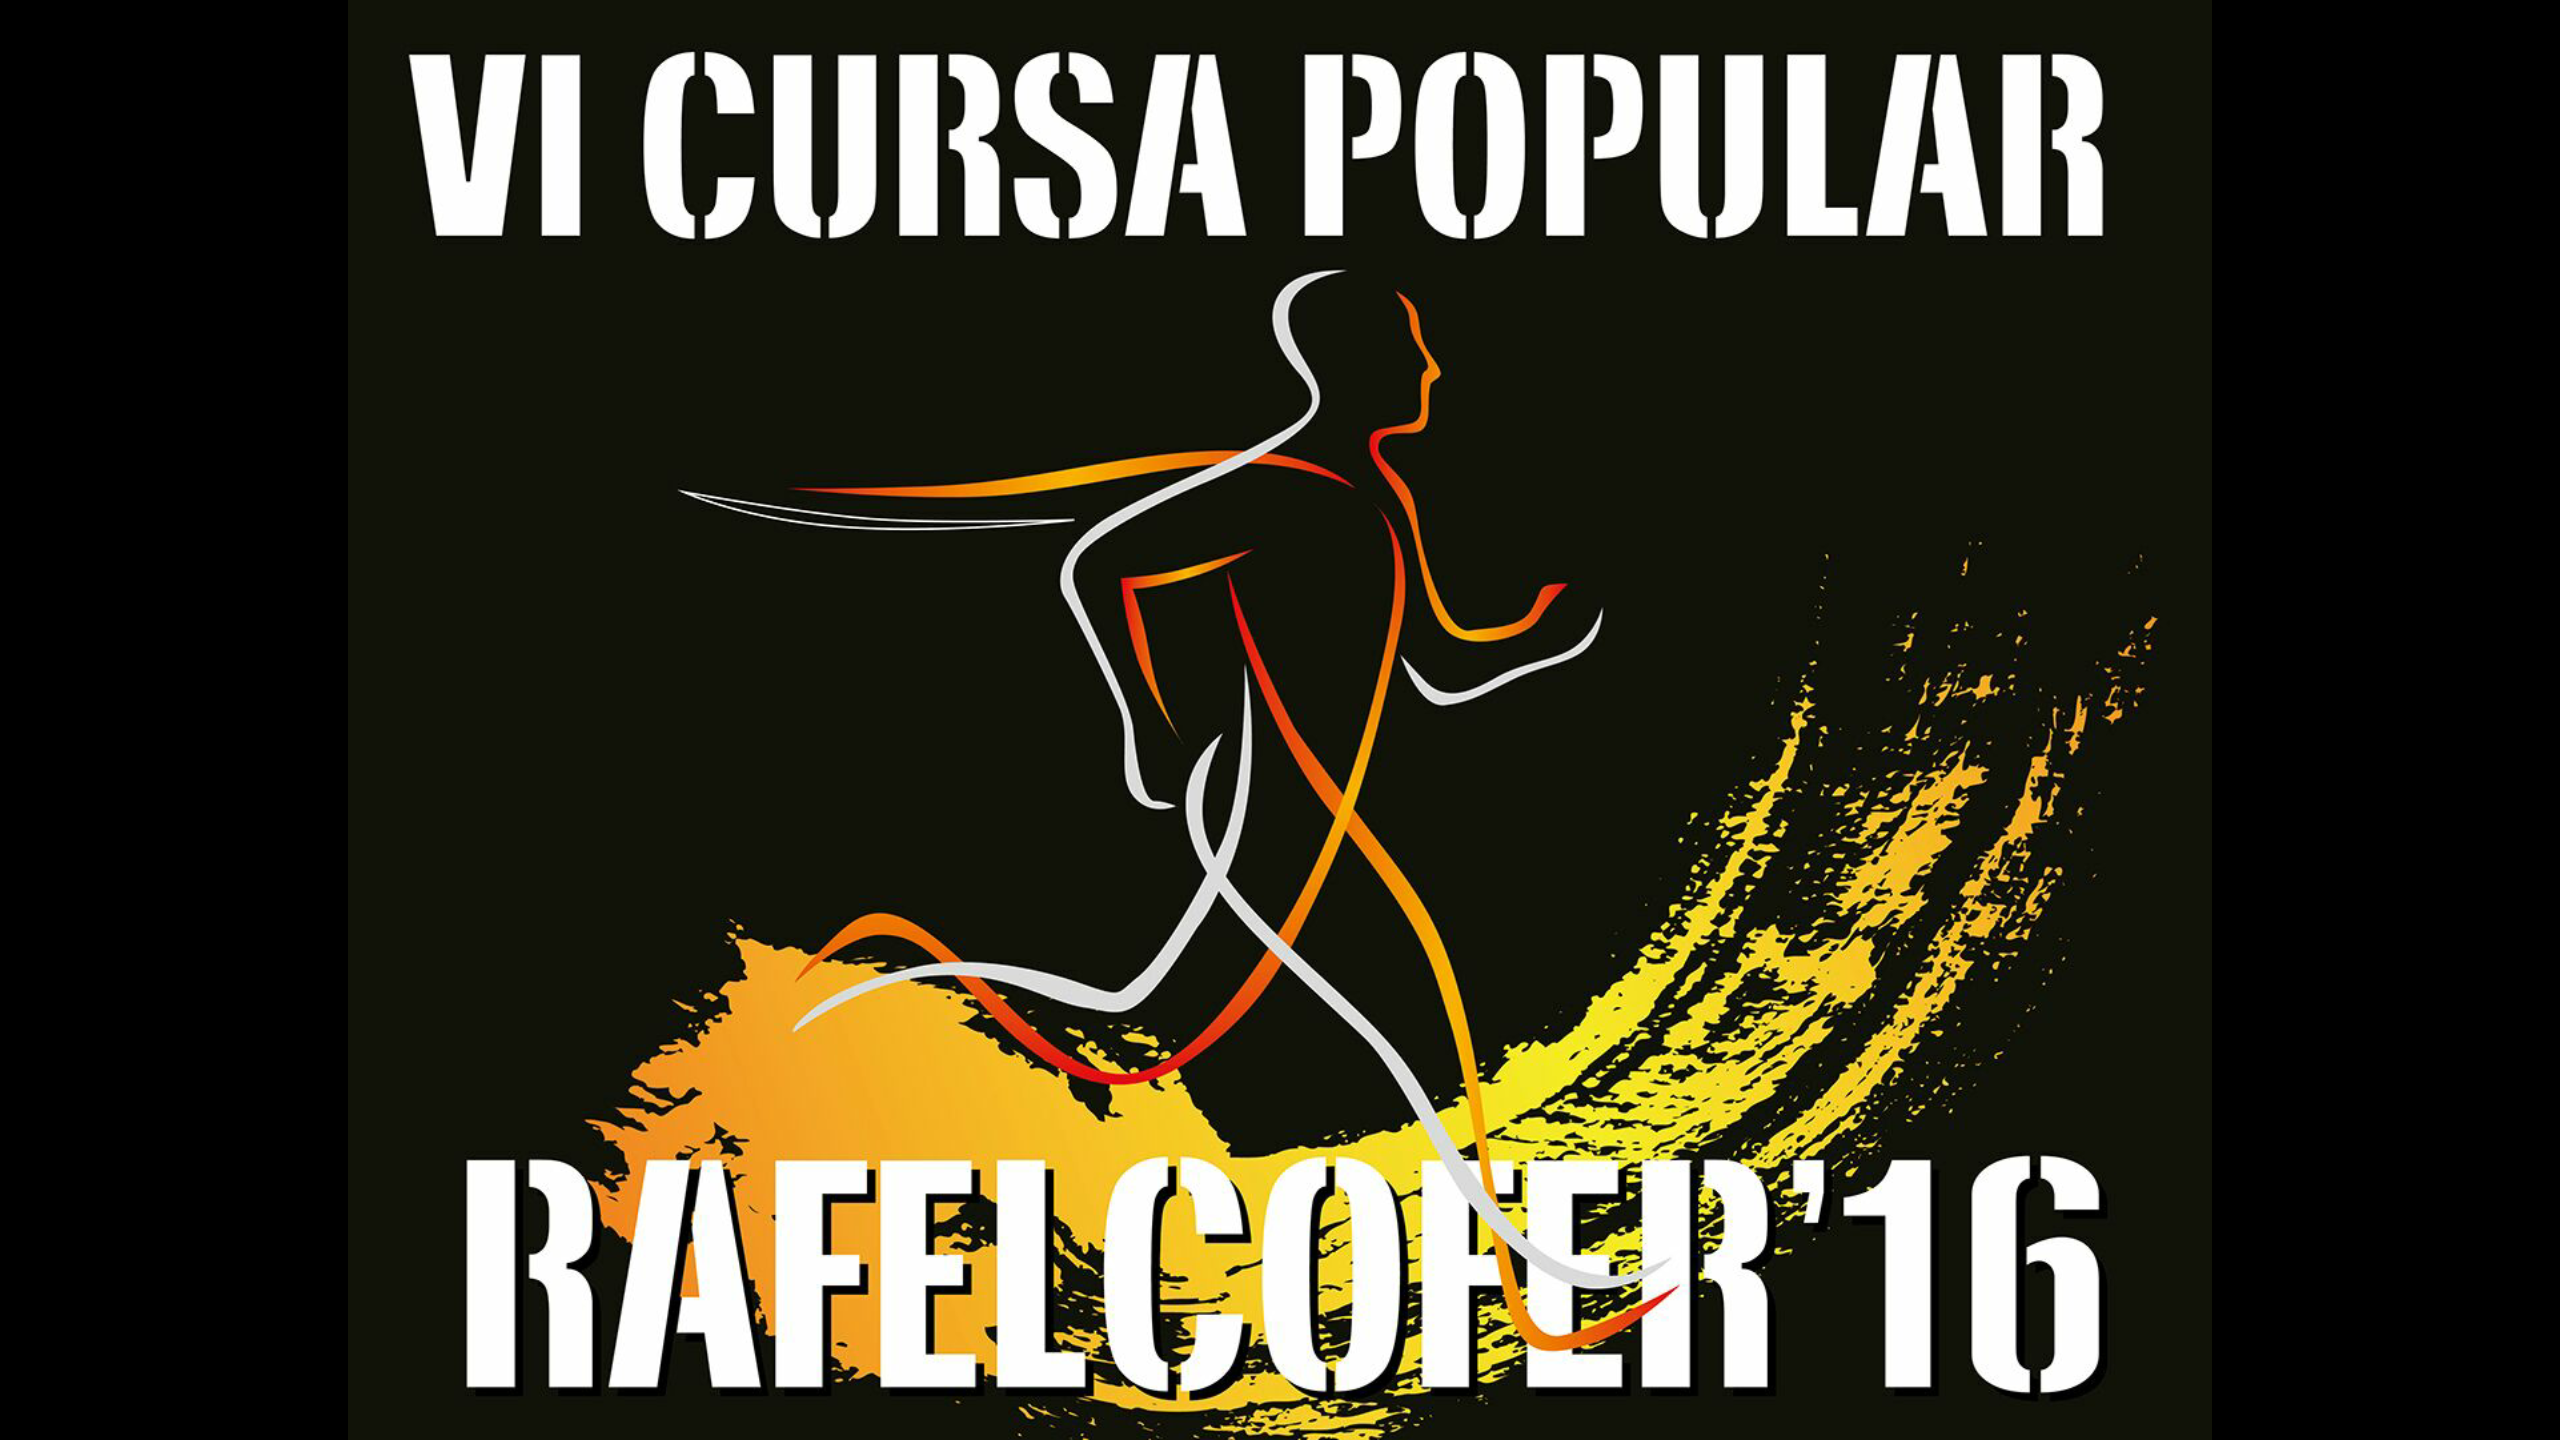 VI Cursa Popular Rafelcofer